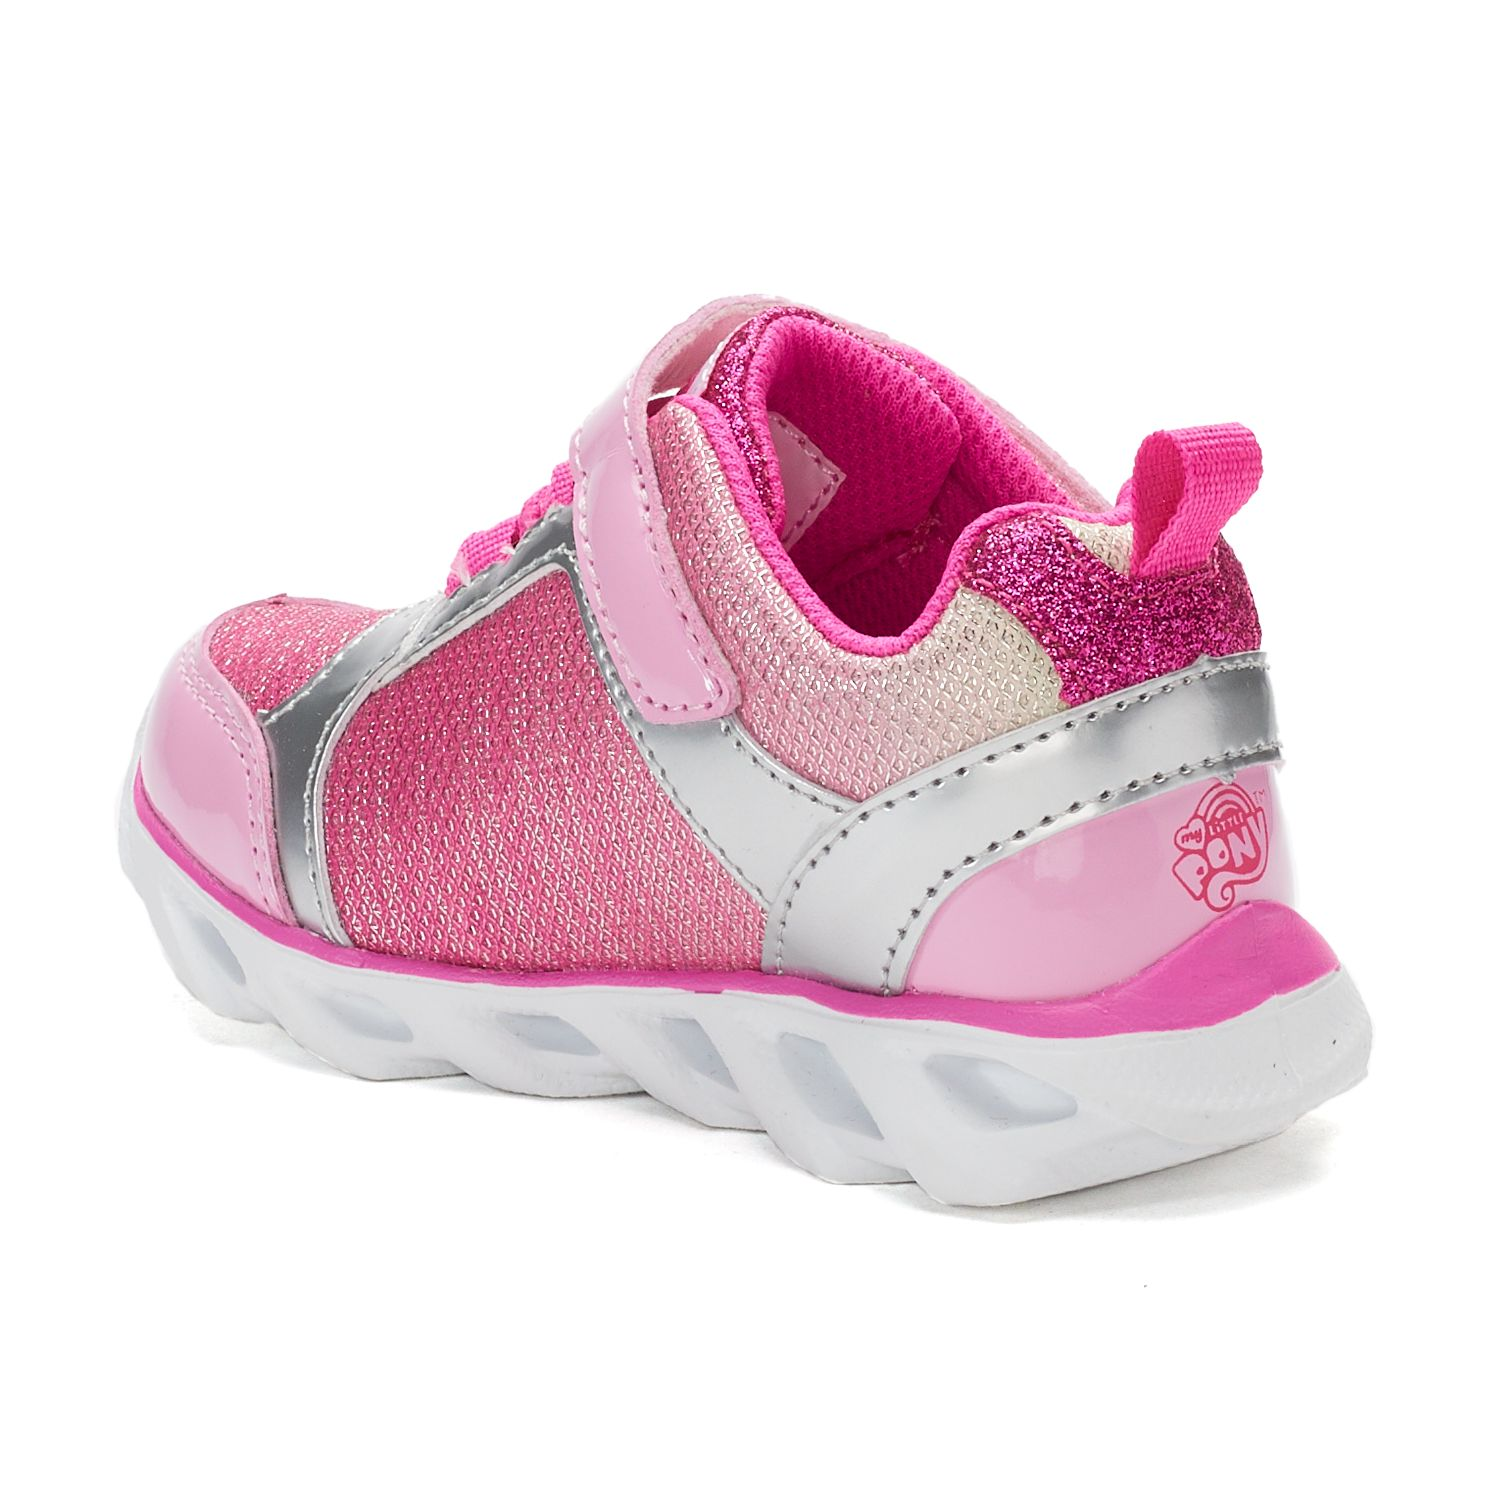 Toddler Light Up Shoes